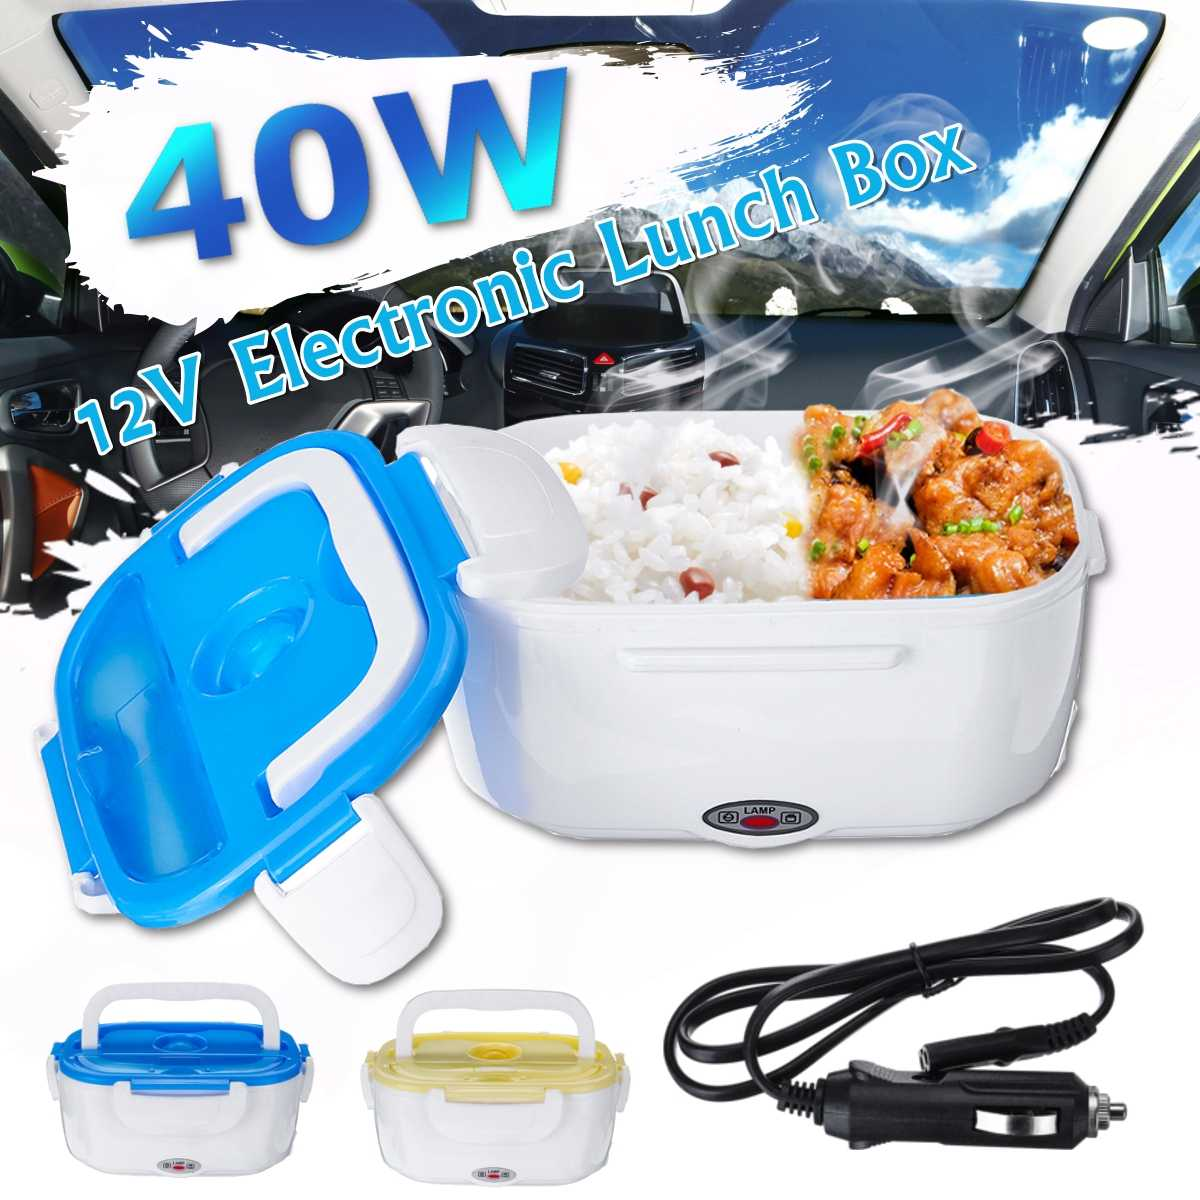 AUGIENB Portable Lunch Box Food Container Electric Heating Food Warmer Heater Rice Container Dinnerware Sets 12 V/40W